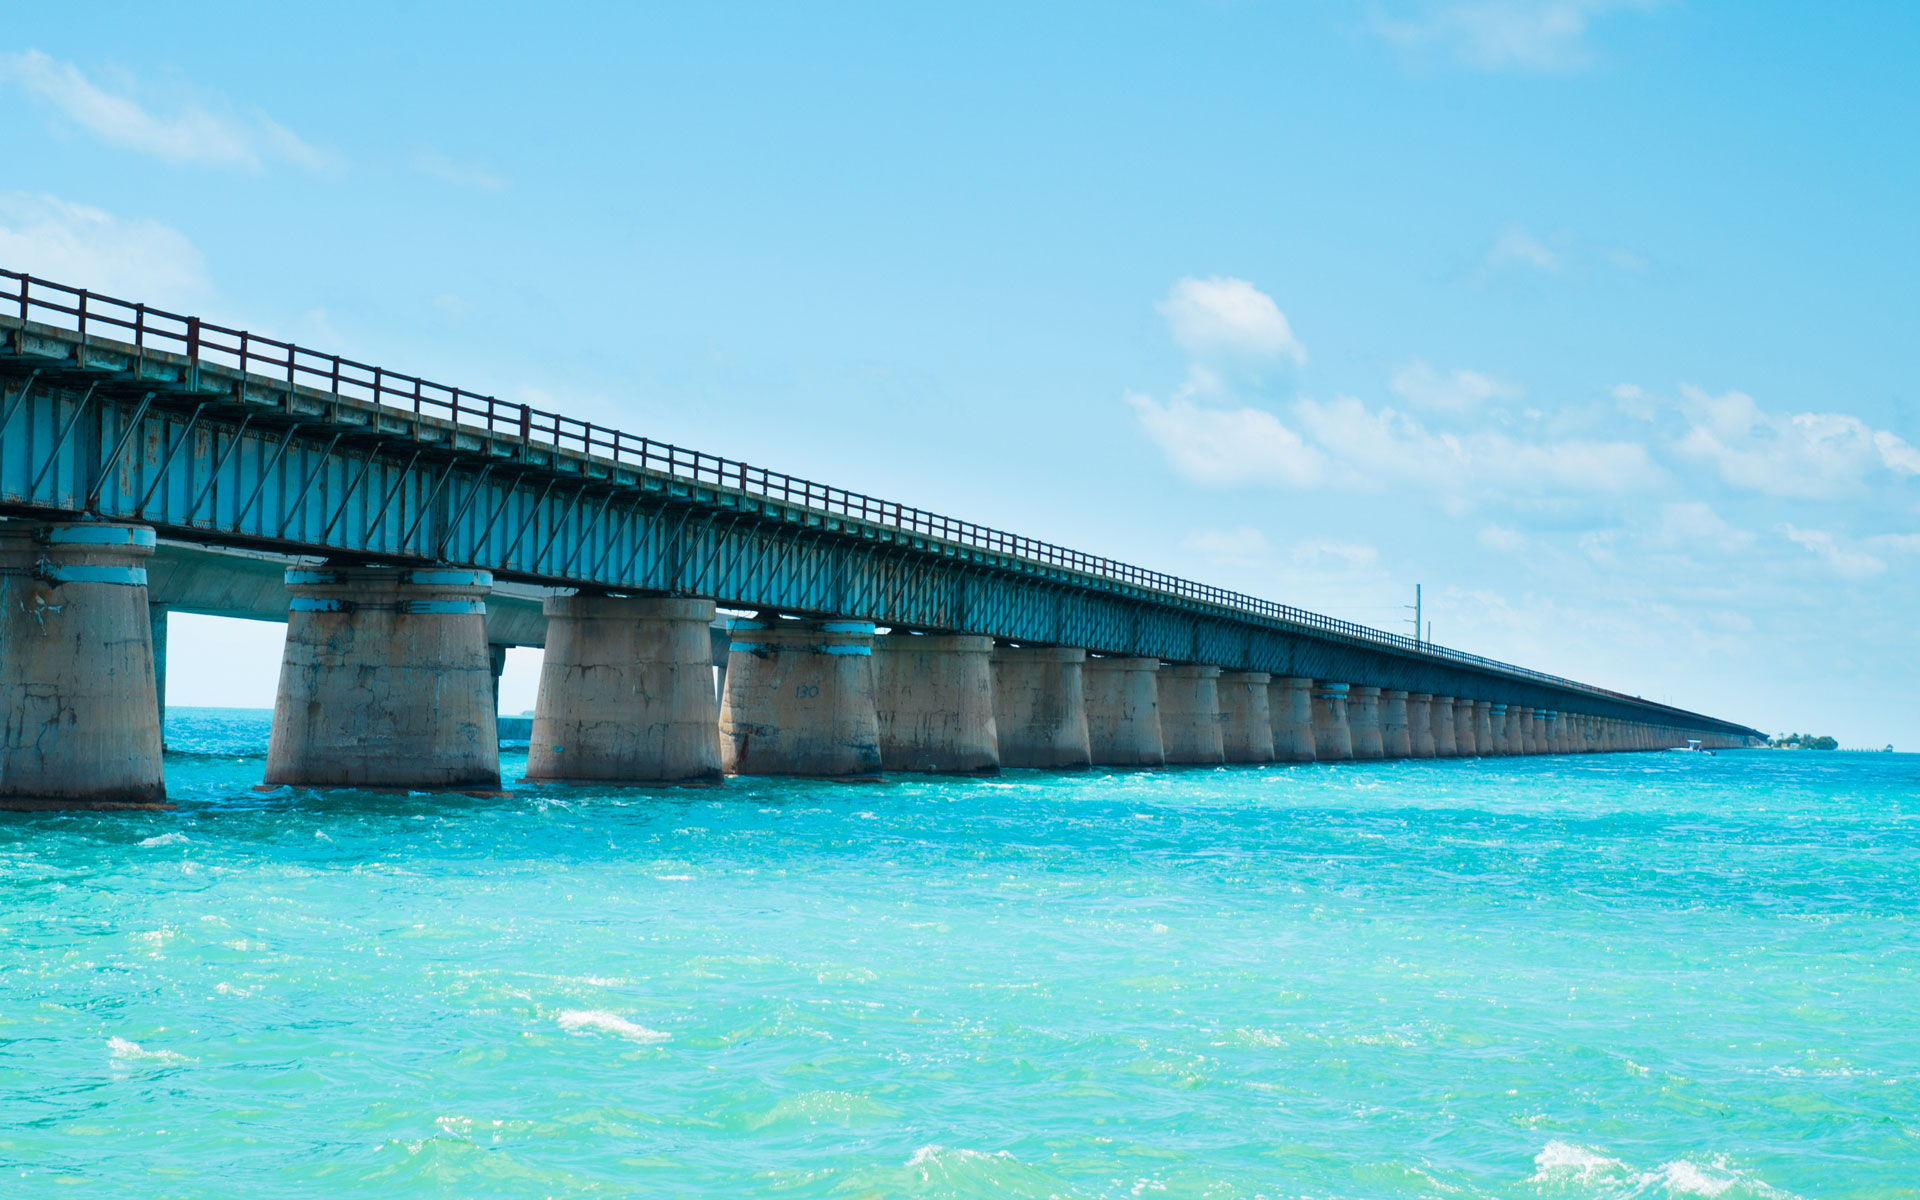 FUN THINGS TO DO IN THE KEYS